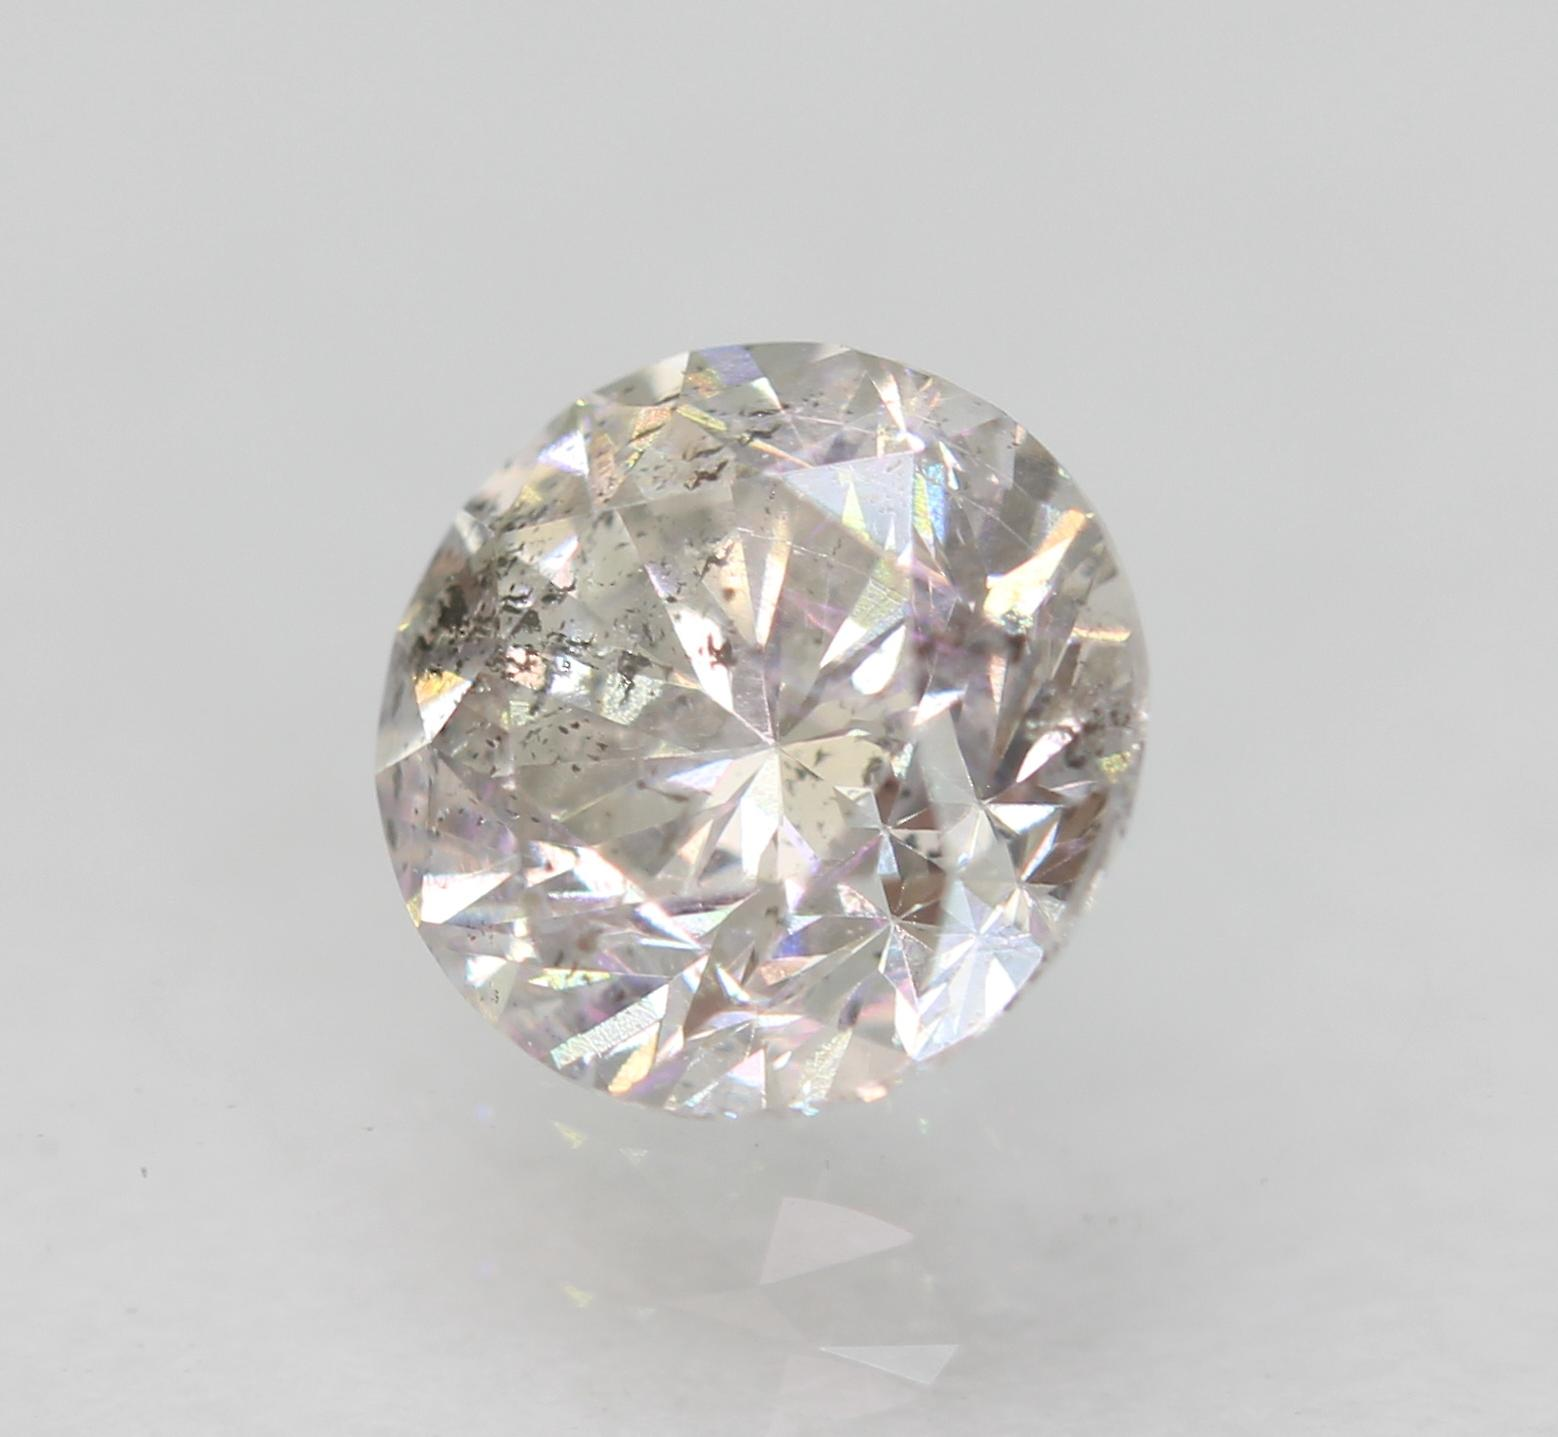 Certified 0.55 Carat G SI2 Round Brilliant Enhanced Natural Loose Diamond 5.1mm